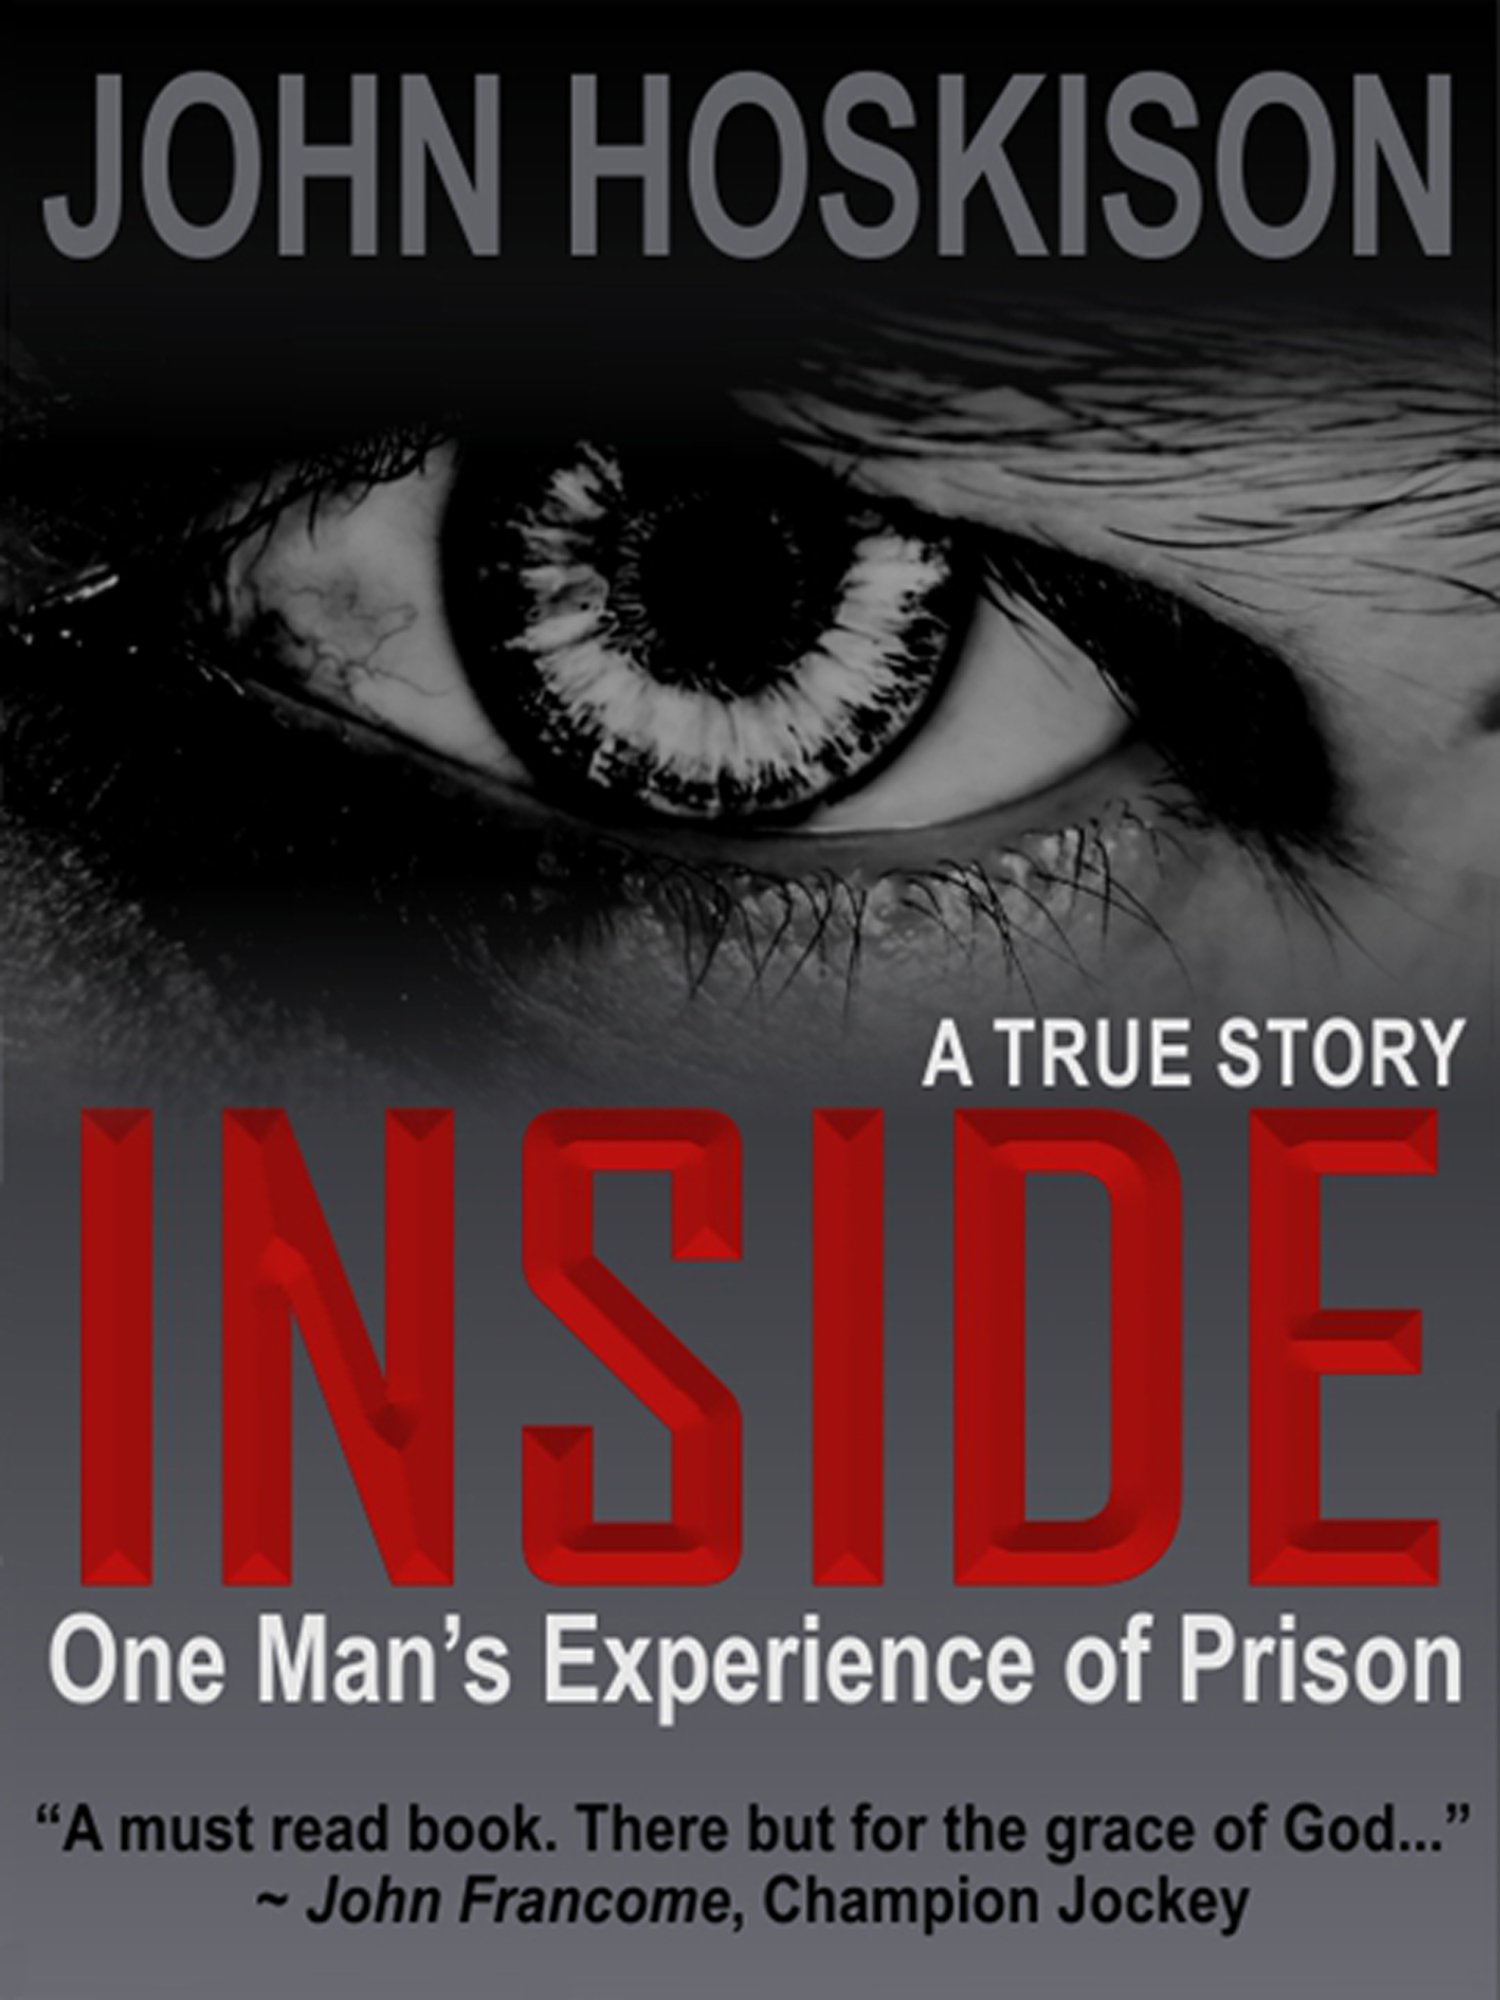 INSIDE - One Man's Experience of Prison (A True Story) By: John Hoskison